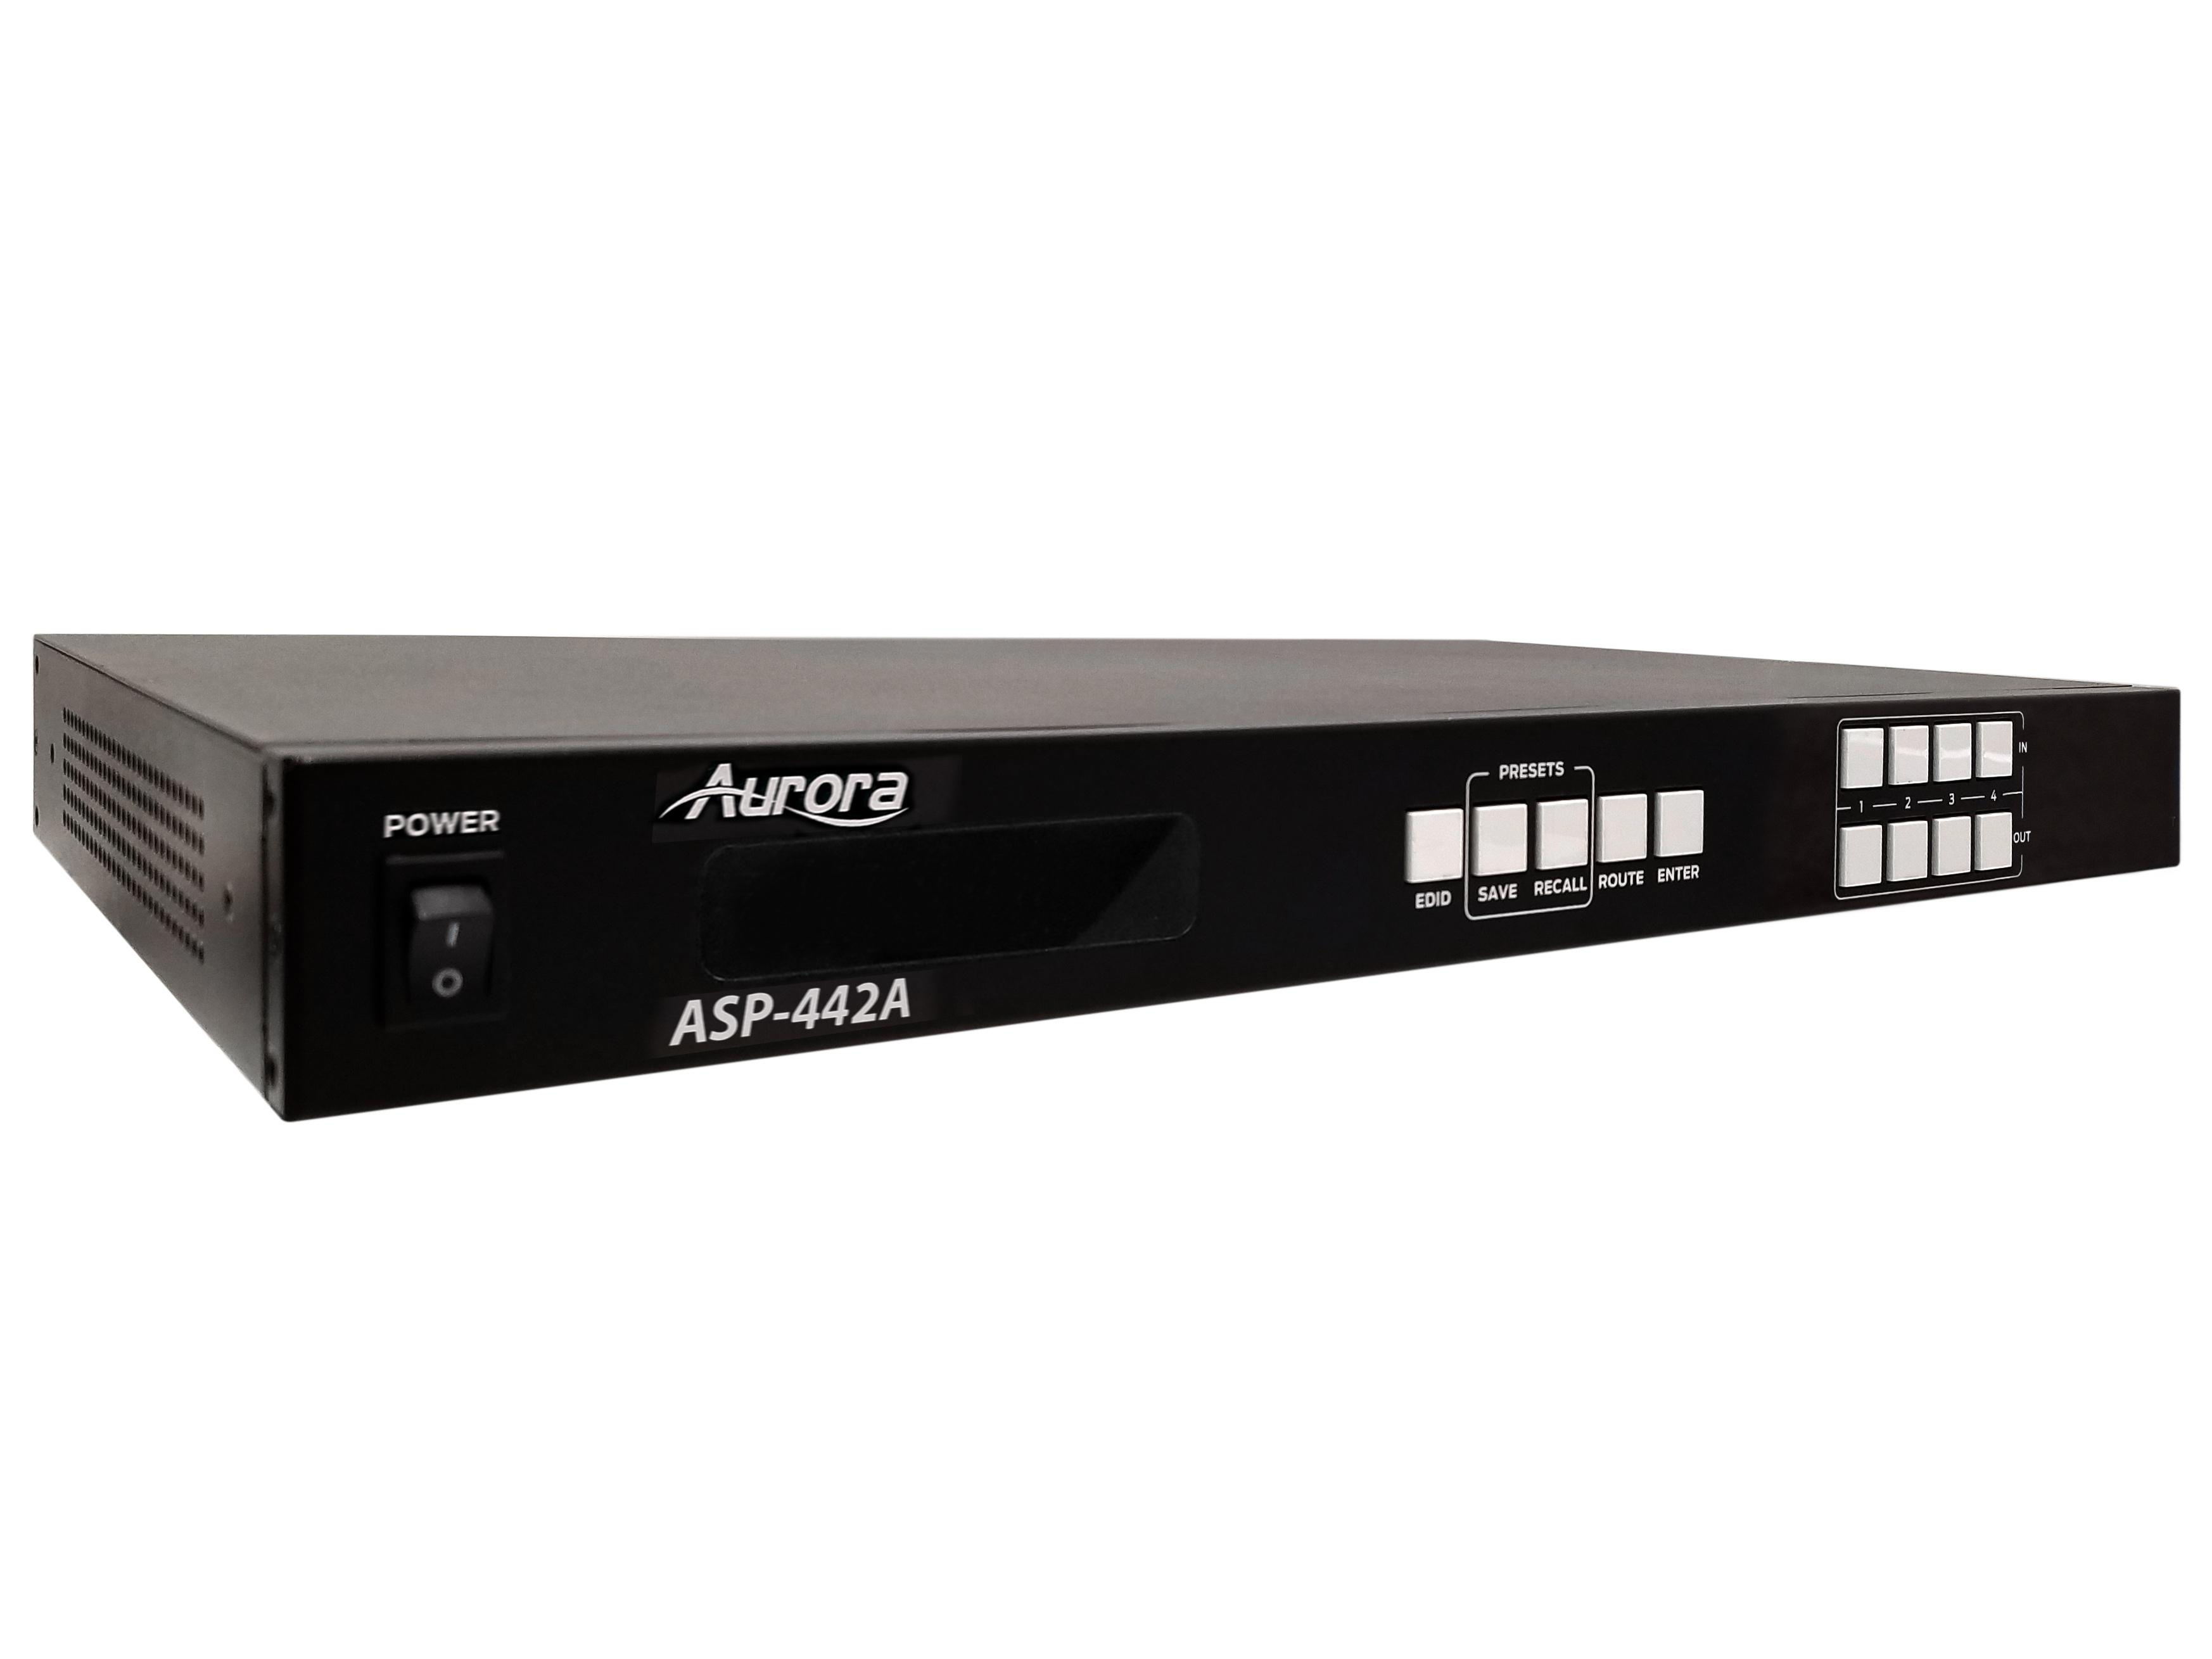 ASP-442A 4x4 HDMI 2.0A Matrix Switcher 4K60Hz UHD by Aurora Multimedia